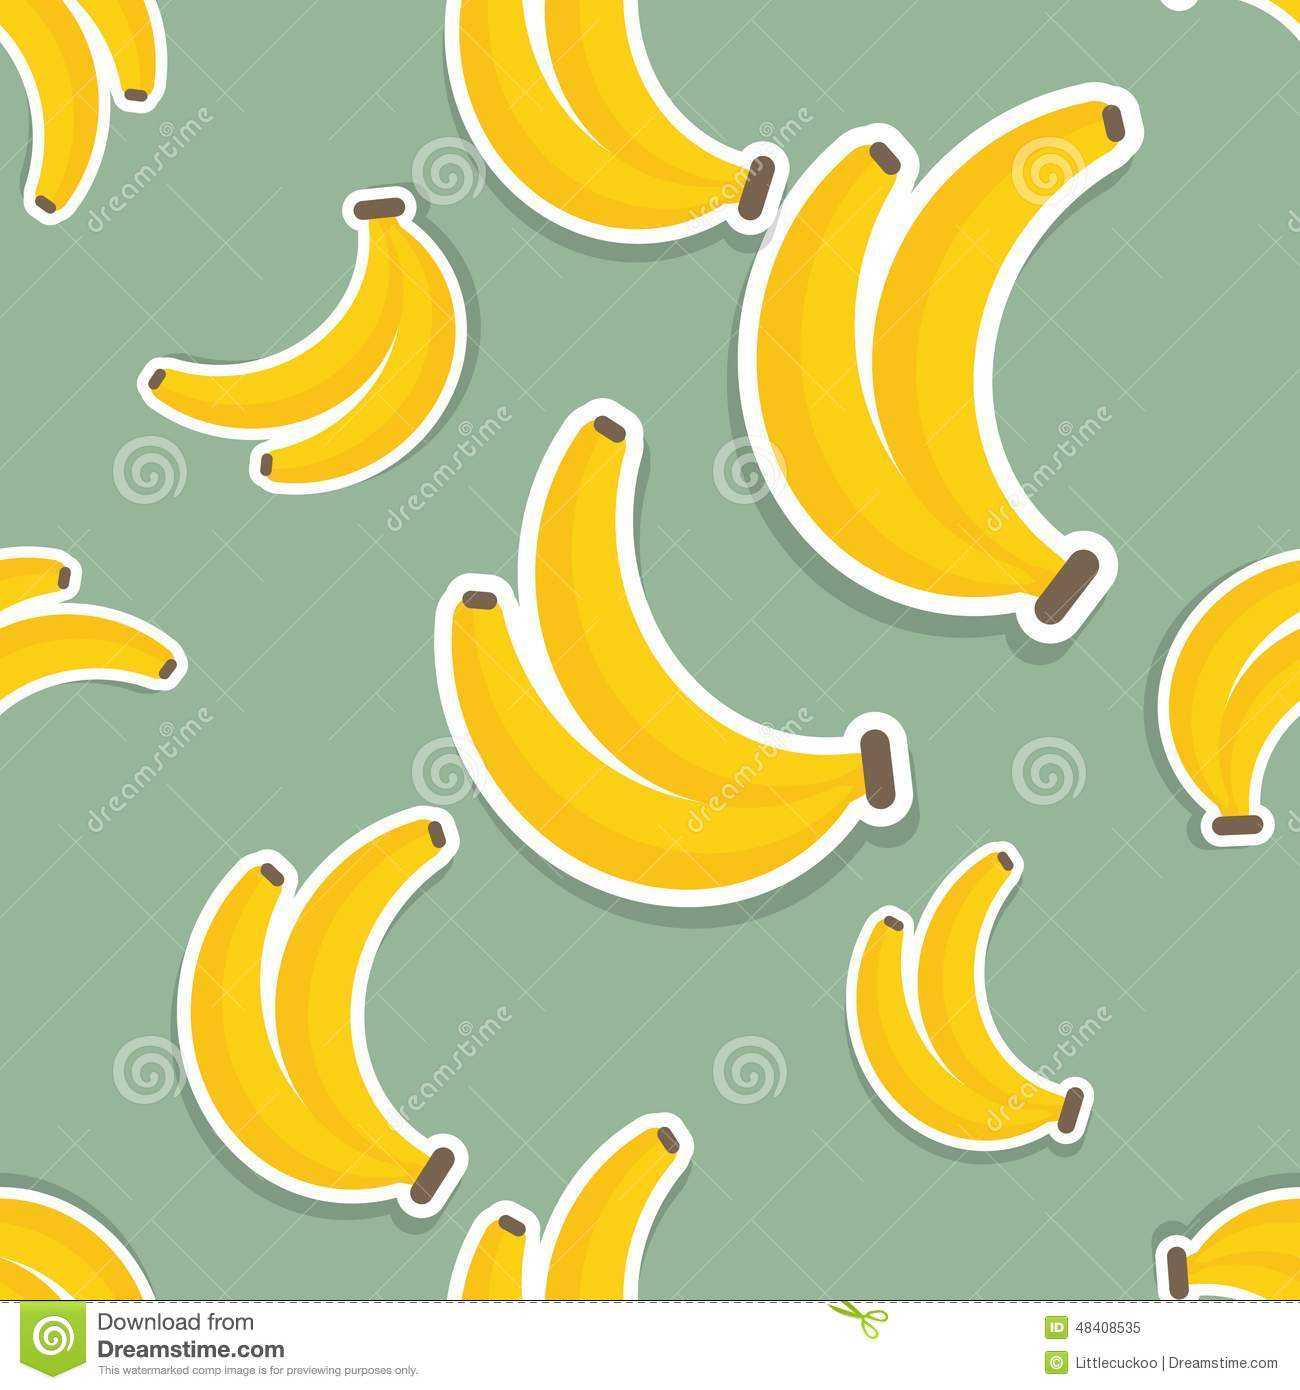 Banana Pattern. Seamless Texture With Ripe Bananas. Natural, Decoration.